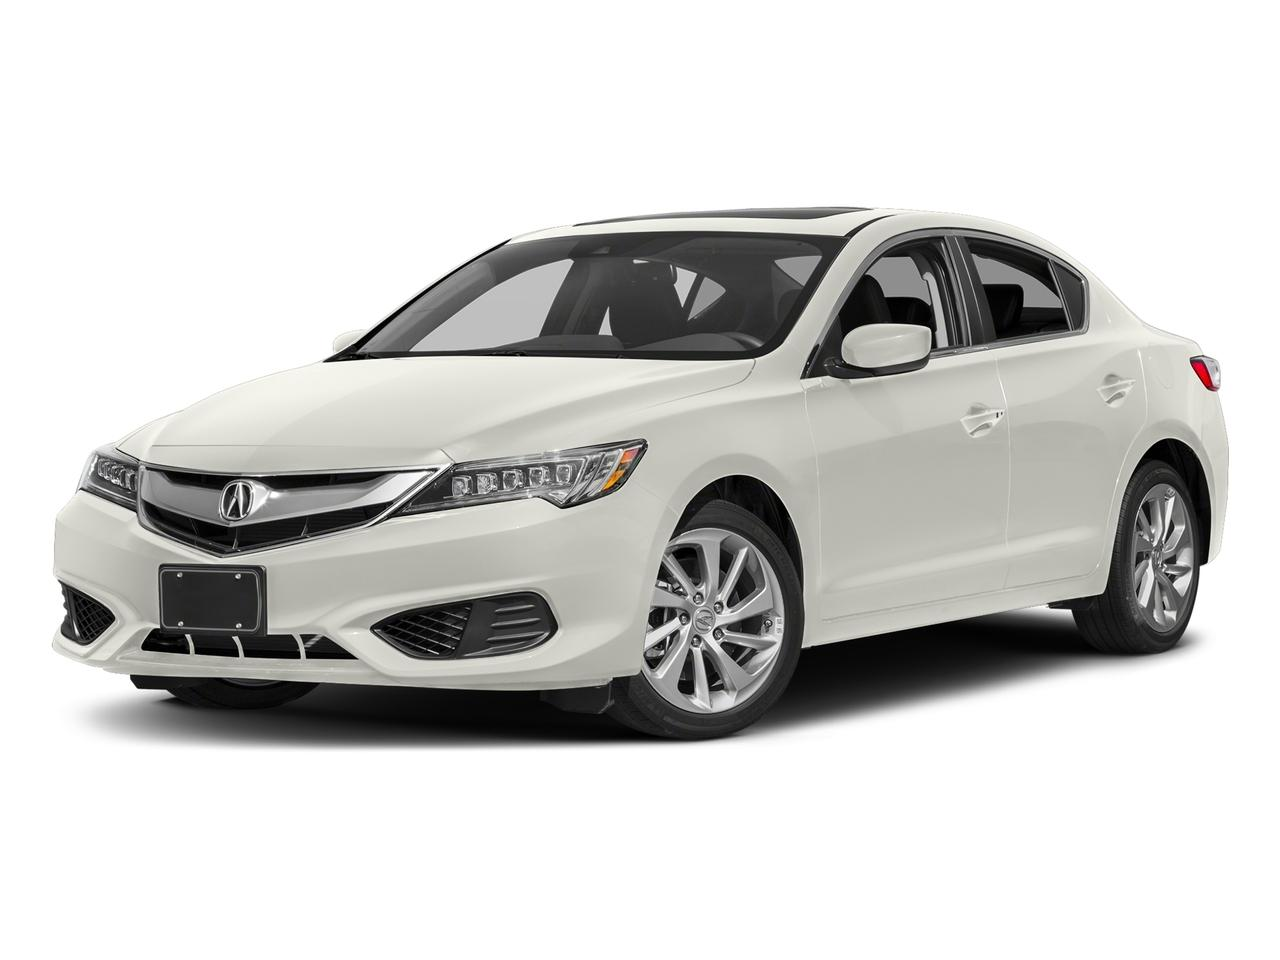 2017 Acura ILX Vehicle Photo in Chapel Hill, NC 27514